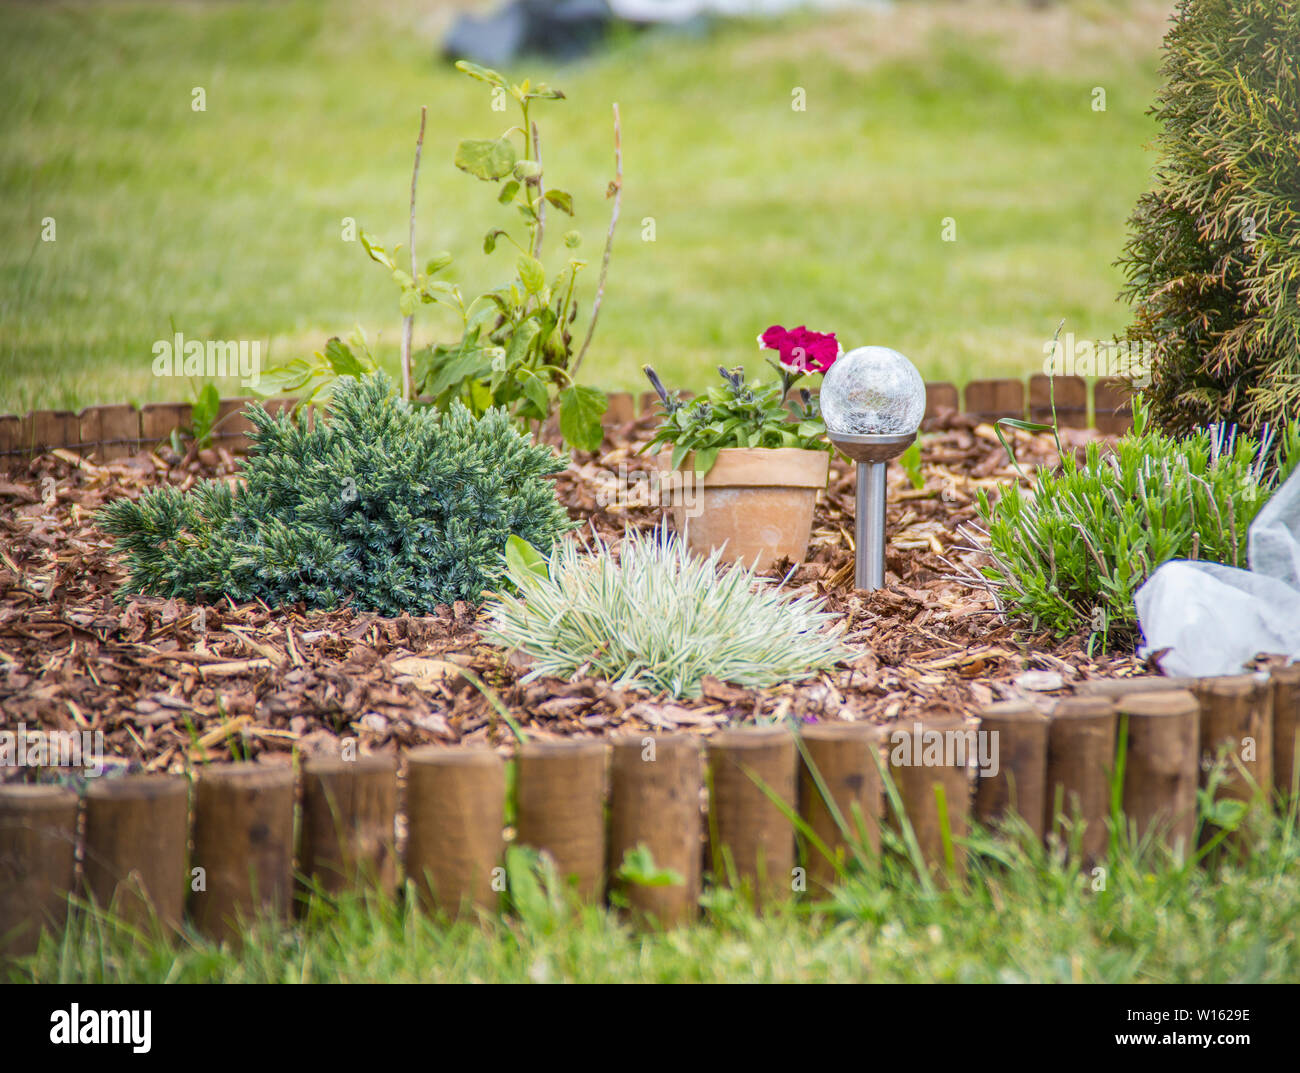 Flower bed with different flowers covered with bark mulch in summer. Solar lamp in the center. Stock Photo